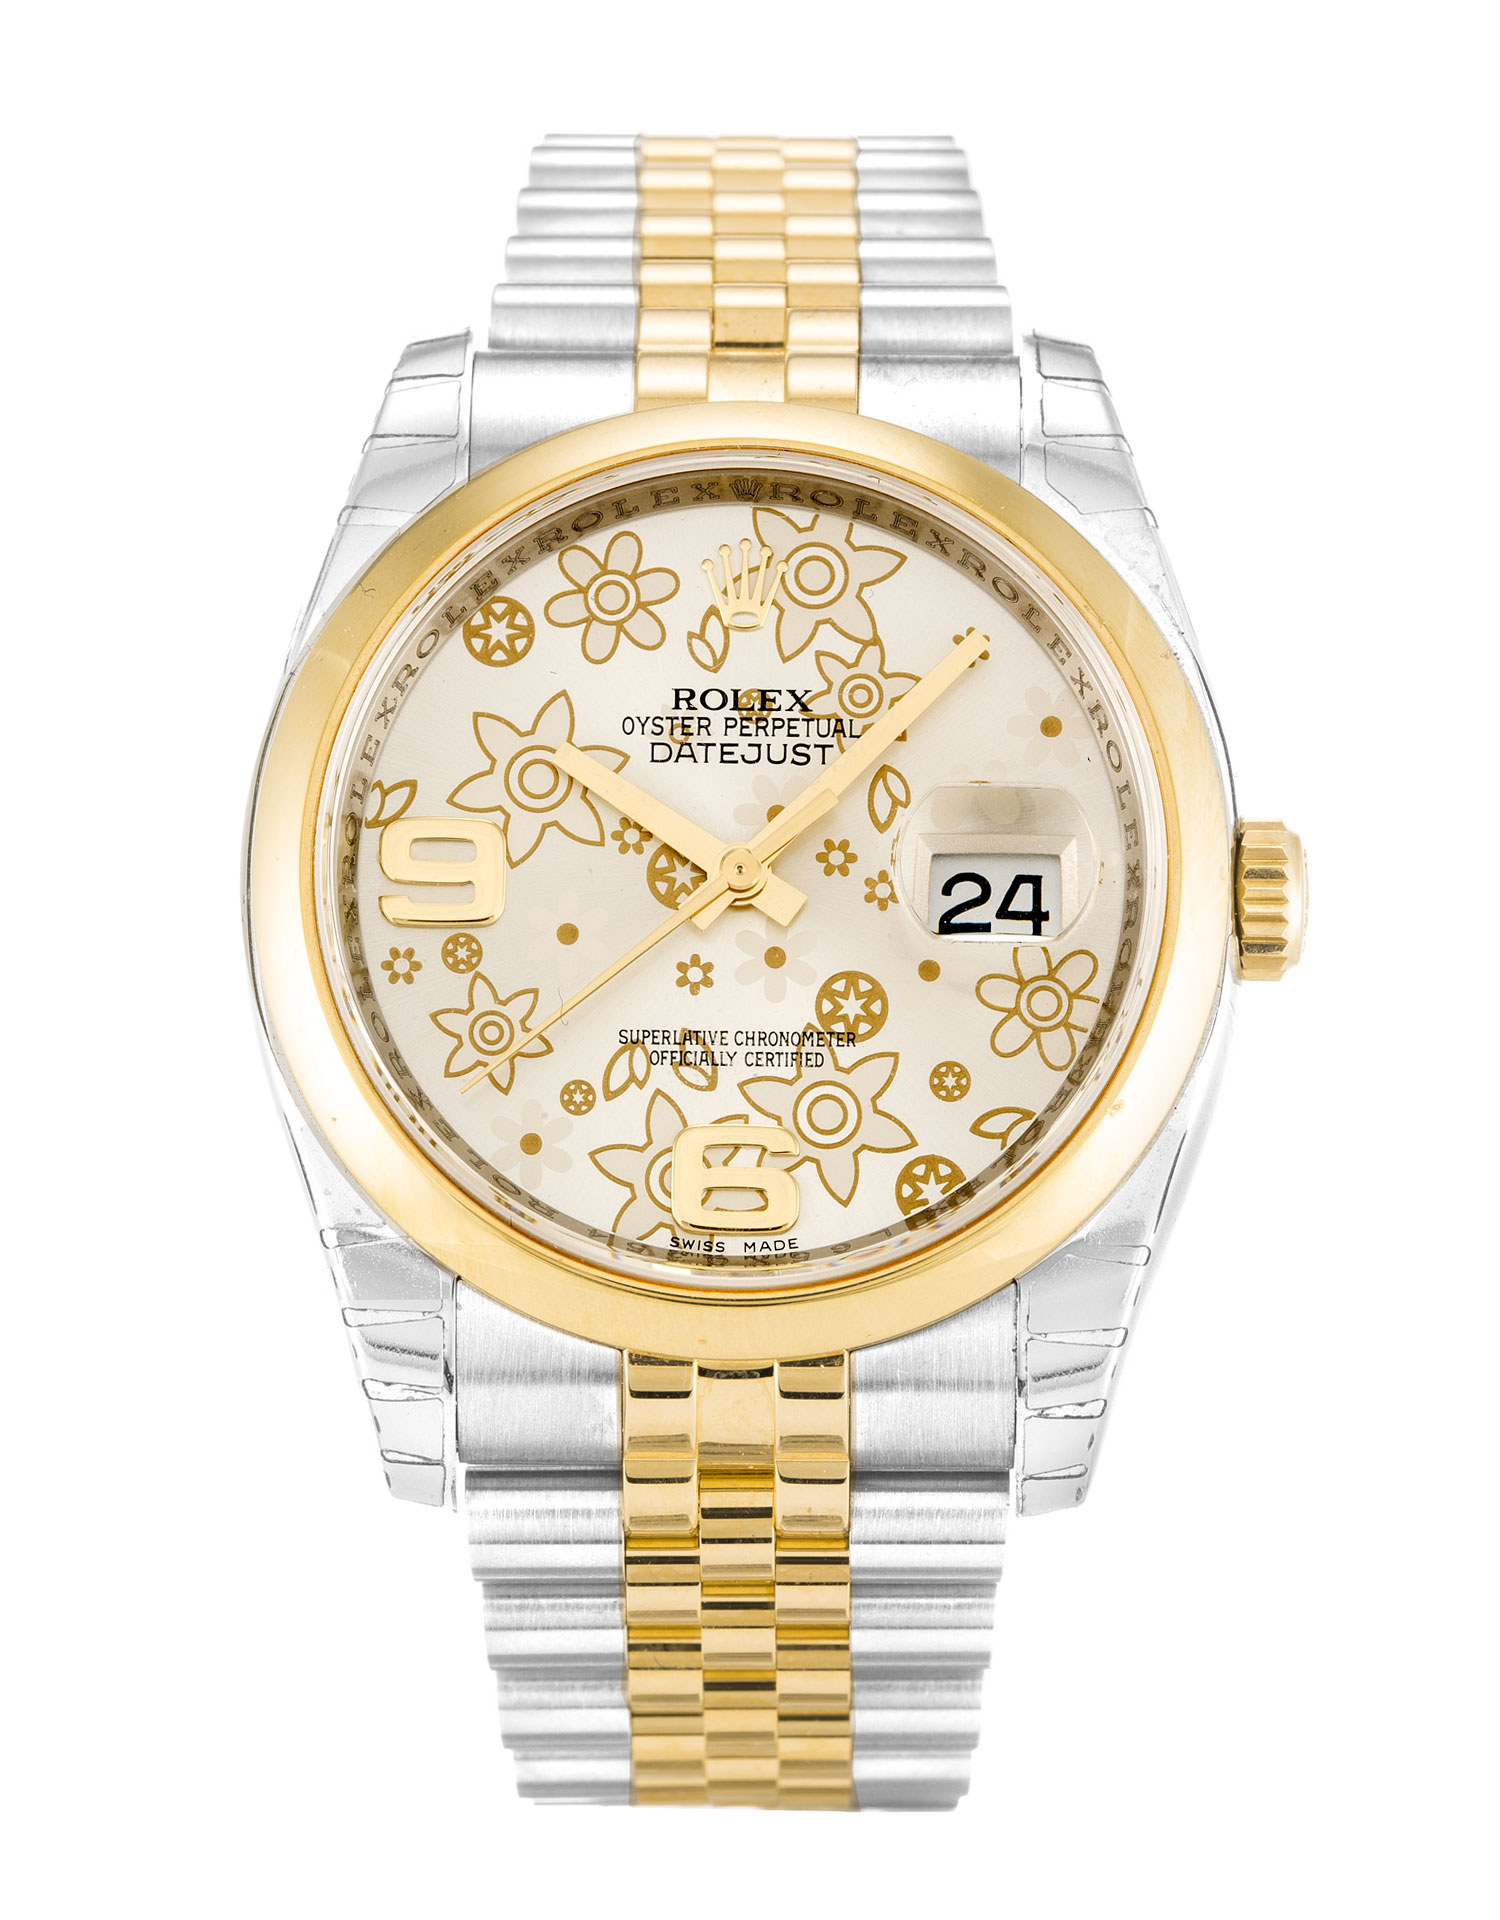 Rolex Datejust 116203 Unisex 36 Mm Steel & Yellow Gold Case Automatic Movement – iapac.to